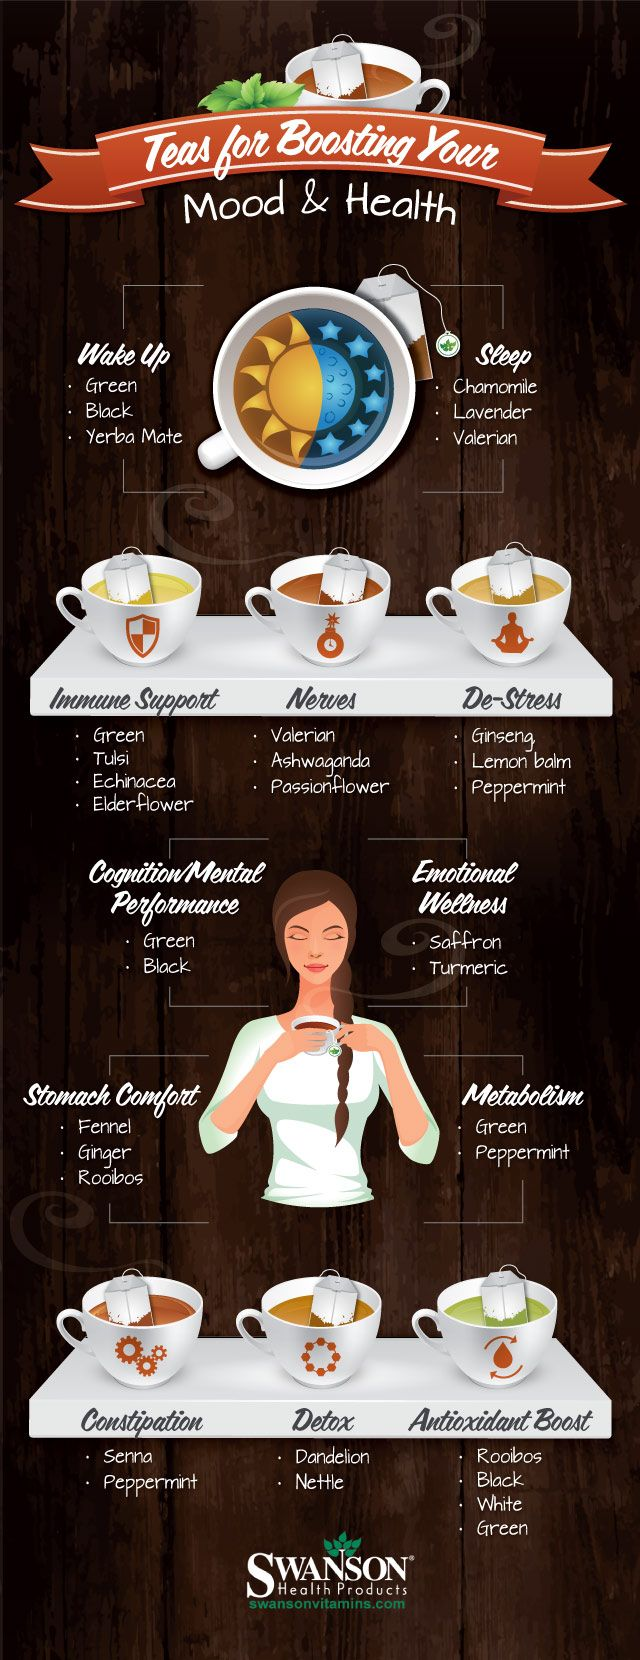 [NEED A HEALTHY BODY SLIMMING CLEANSE? - Get 28 day Full body slimming Detox Tea Program - WWW.DETOXMETEA.COM ]  Tips to Enhance Your Mood & Health with Tea infographic